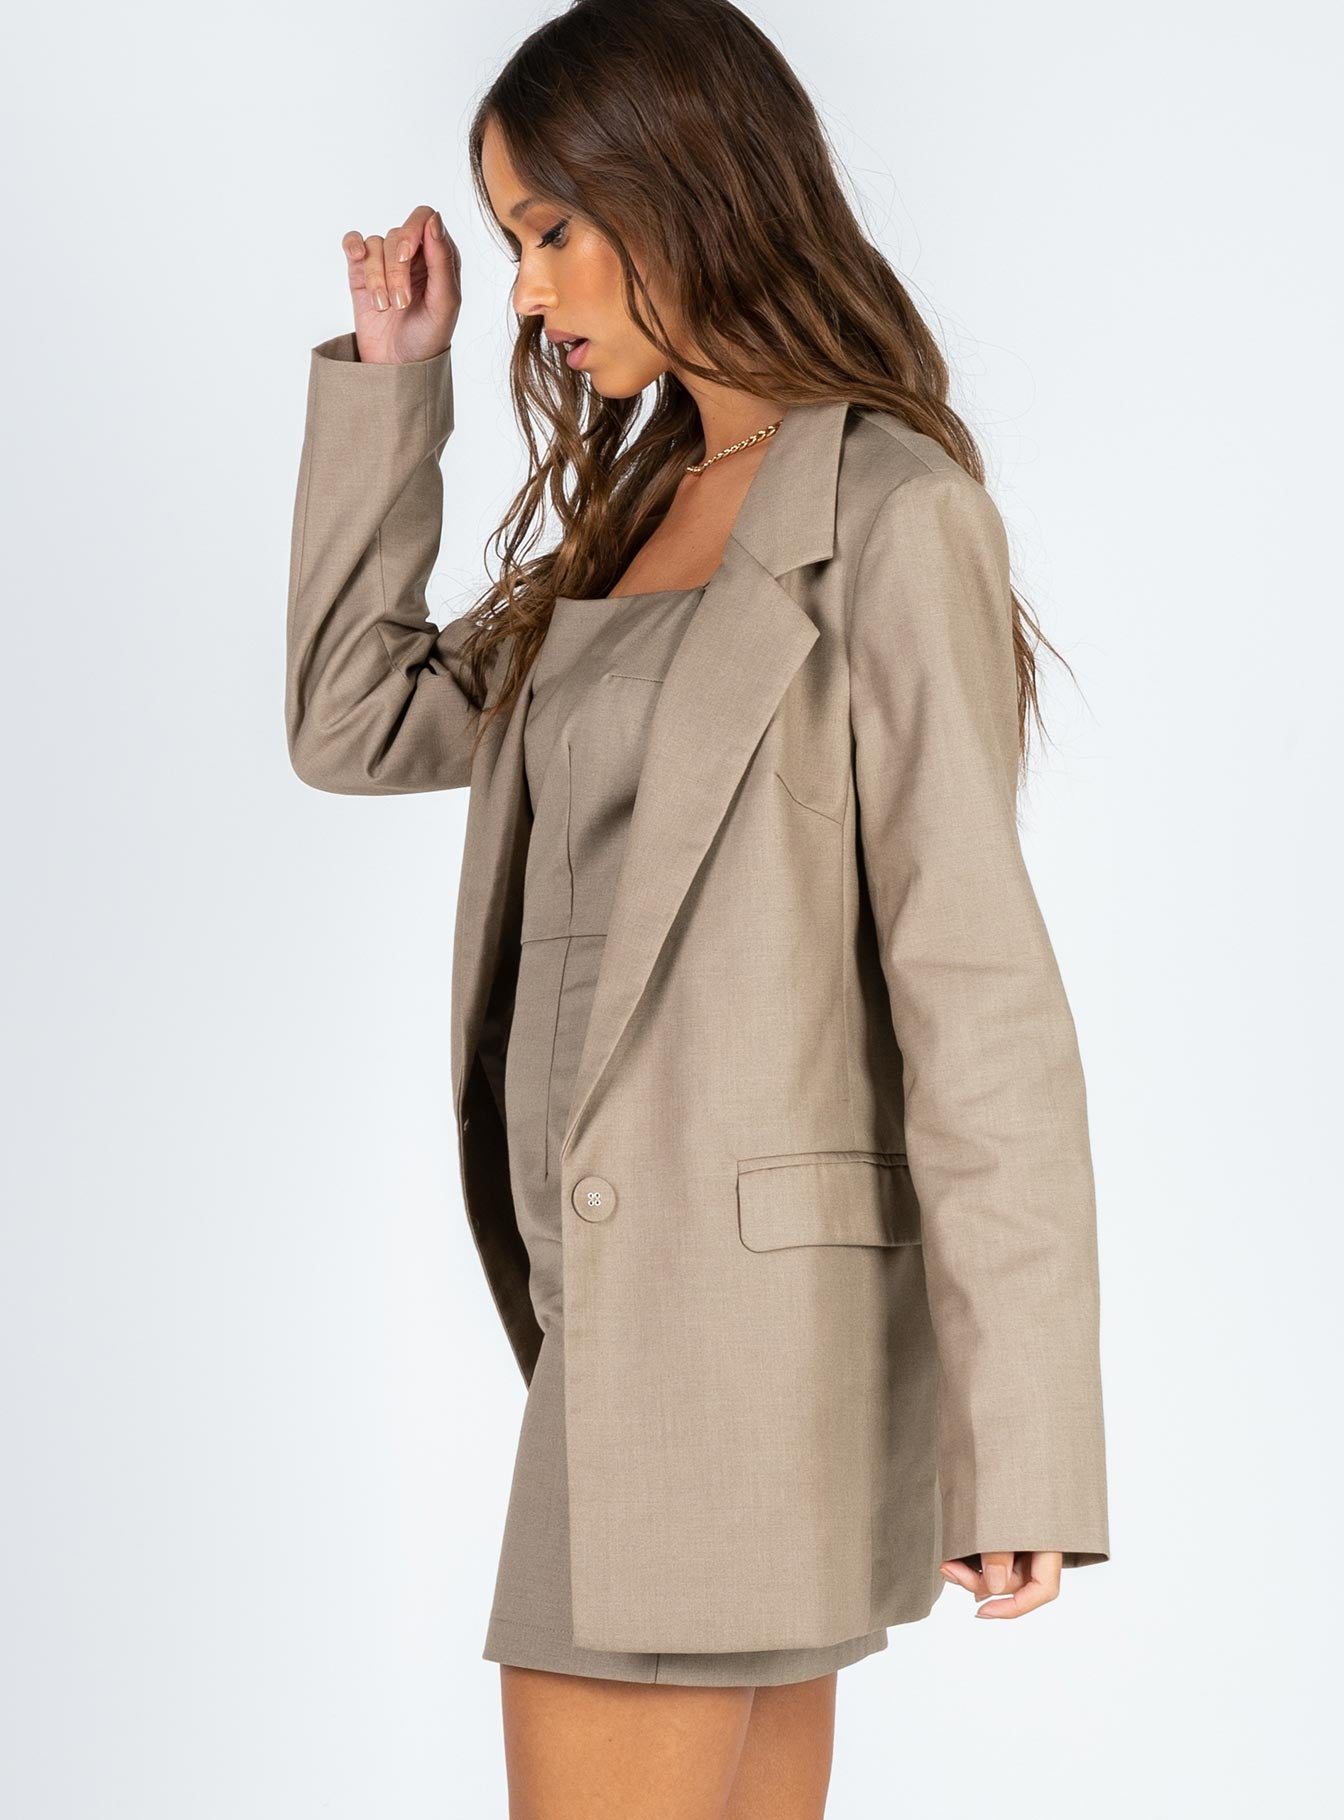 The West Village Blazer Beige